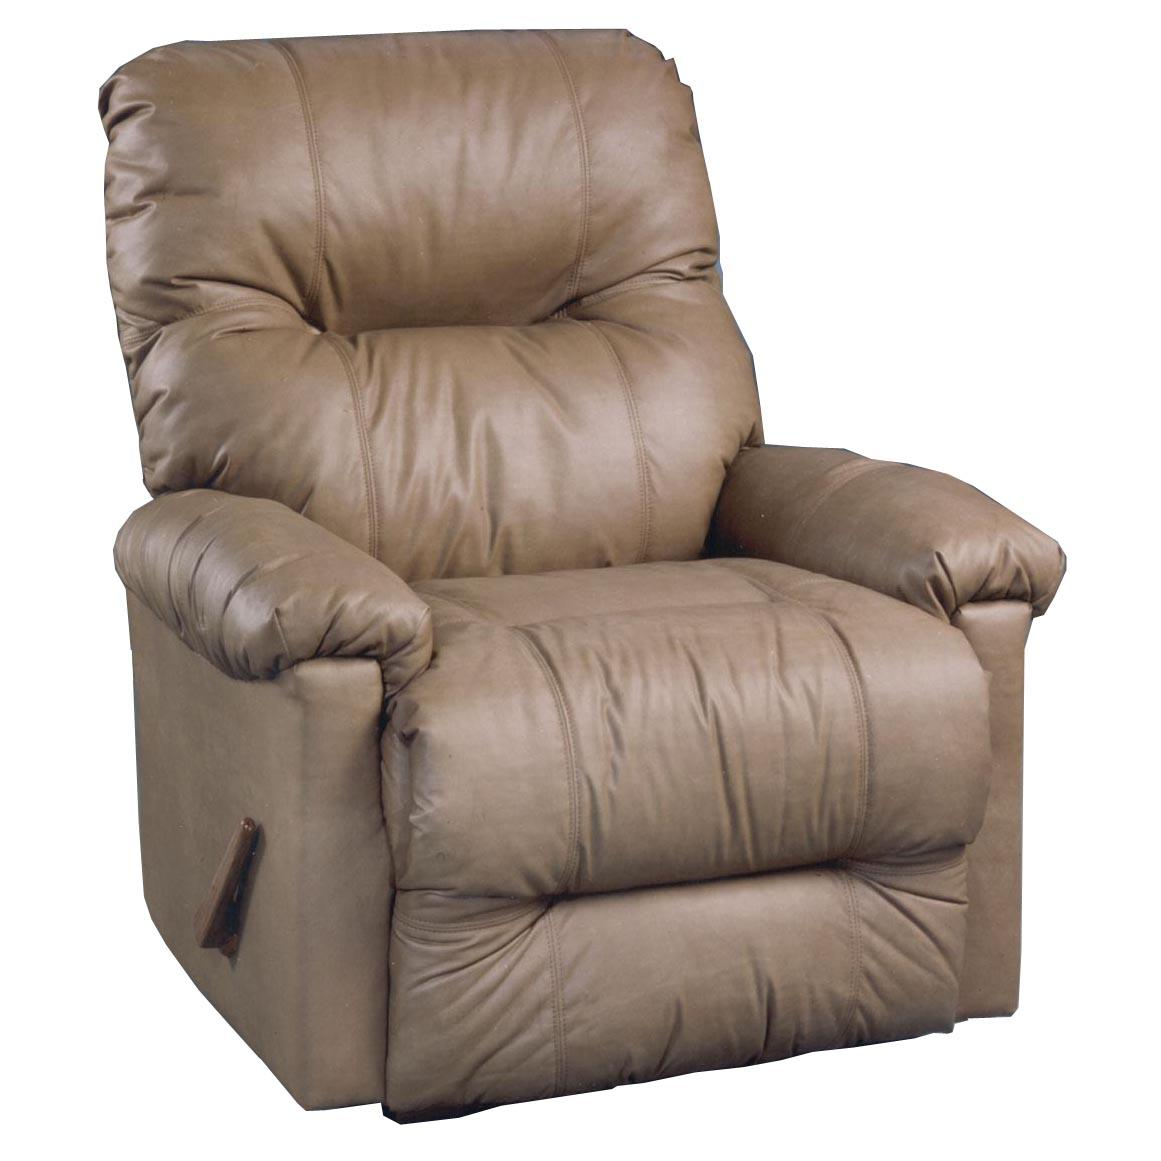 Best Home Furnishings Recliners - Petite Wynette Power Wallhugger Recliner - Item Number: 9MP14-1L